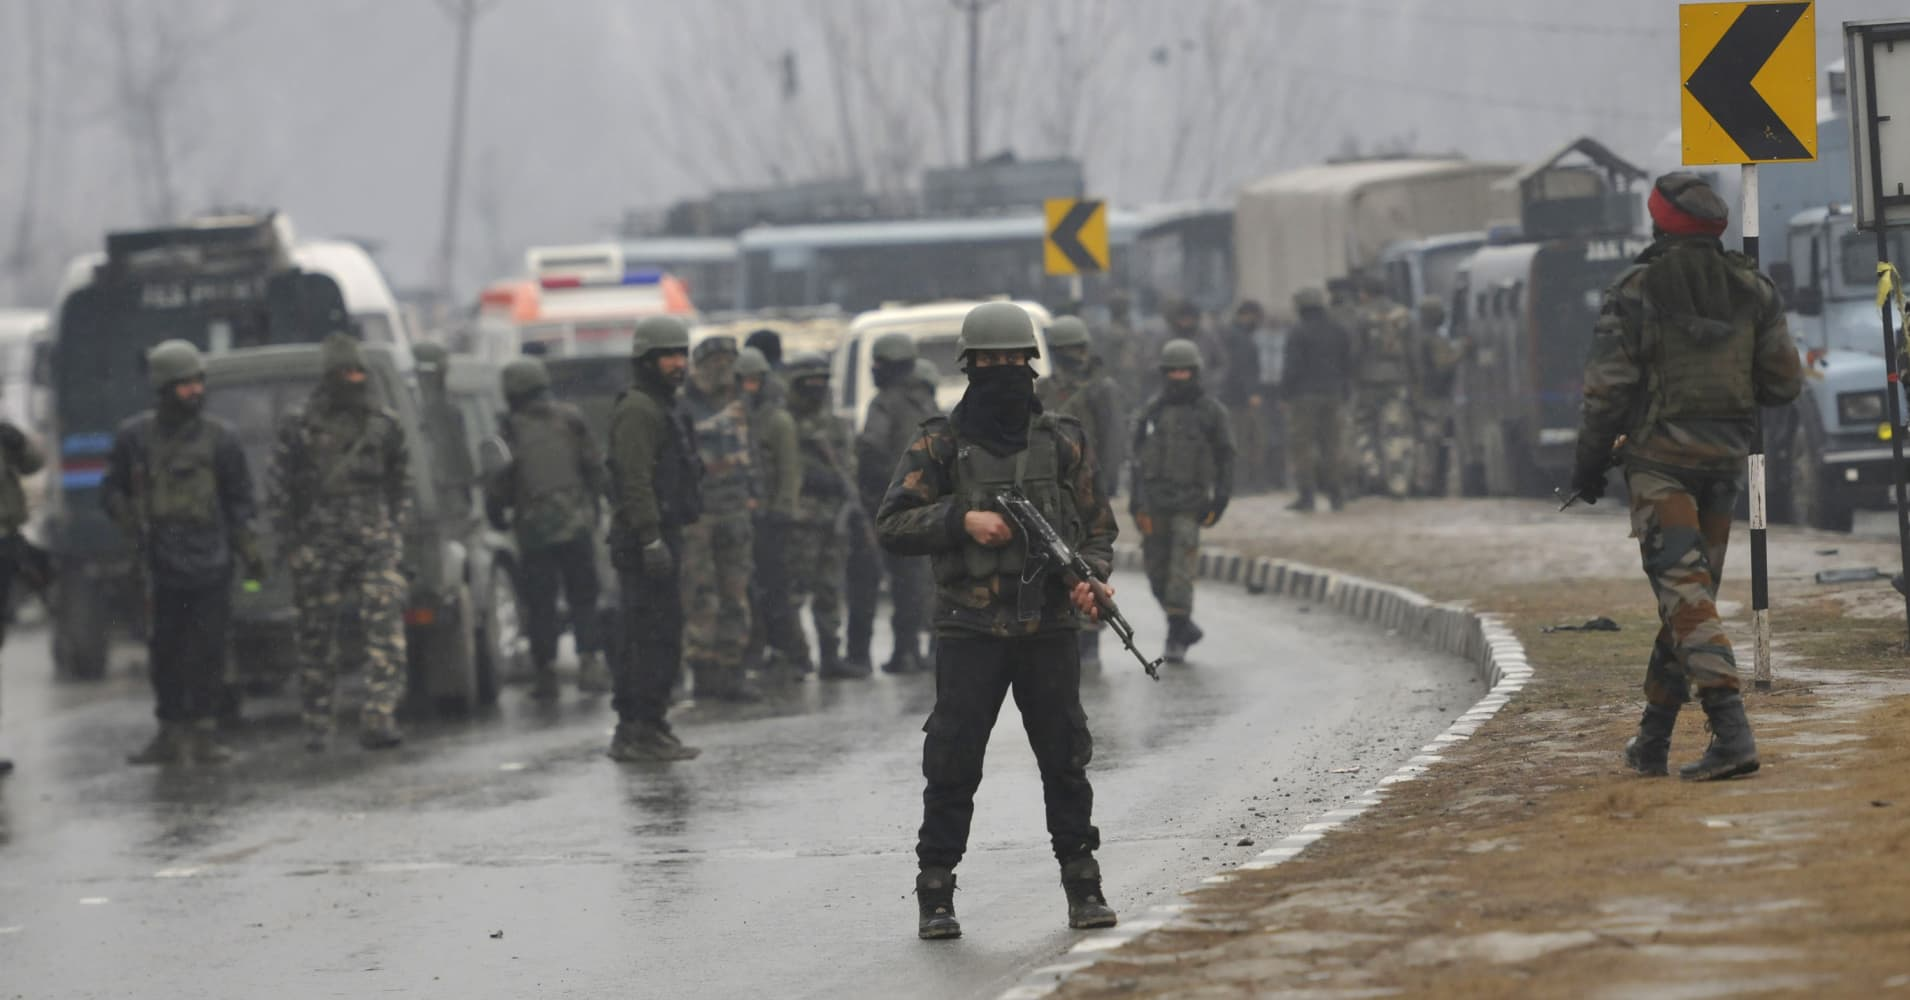 Fears of another India-Pakistan crisis after Kashmir attack